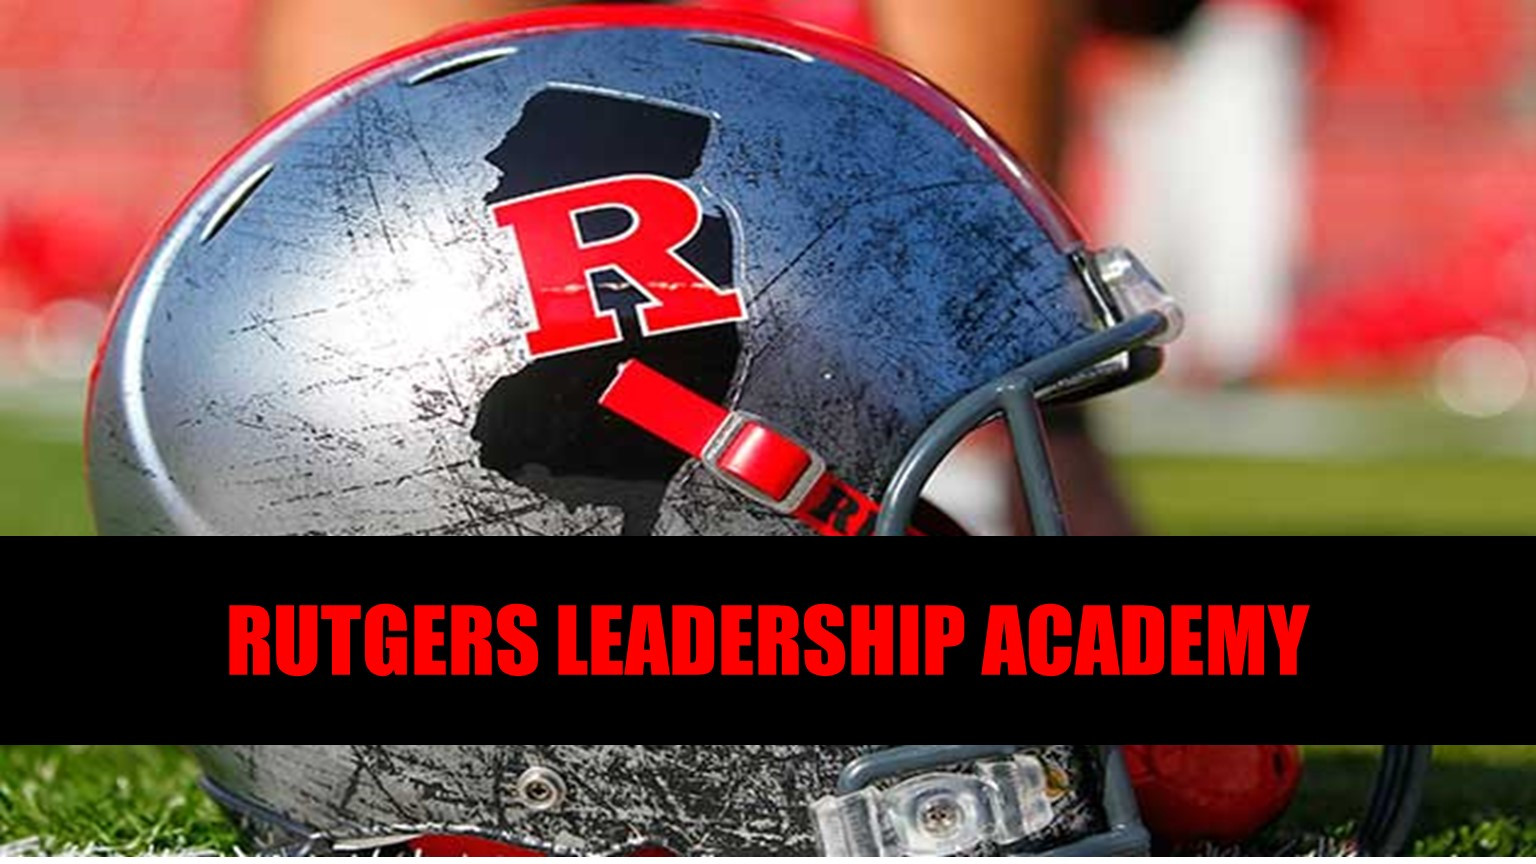 RUTGERS - Title Screen.jpg